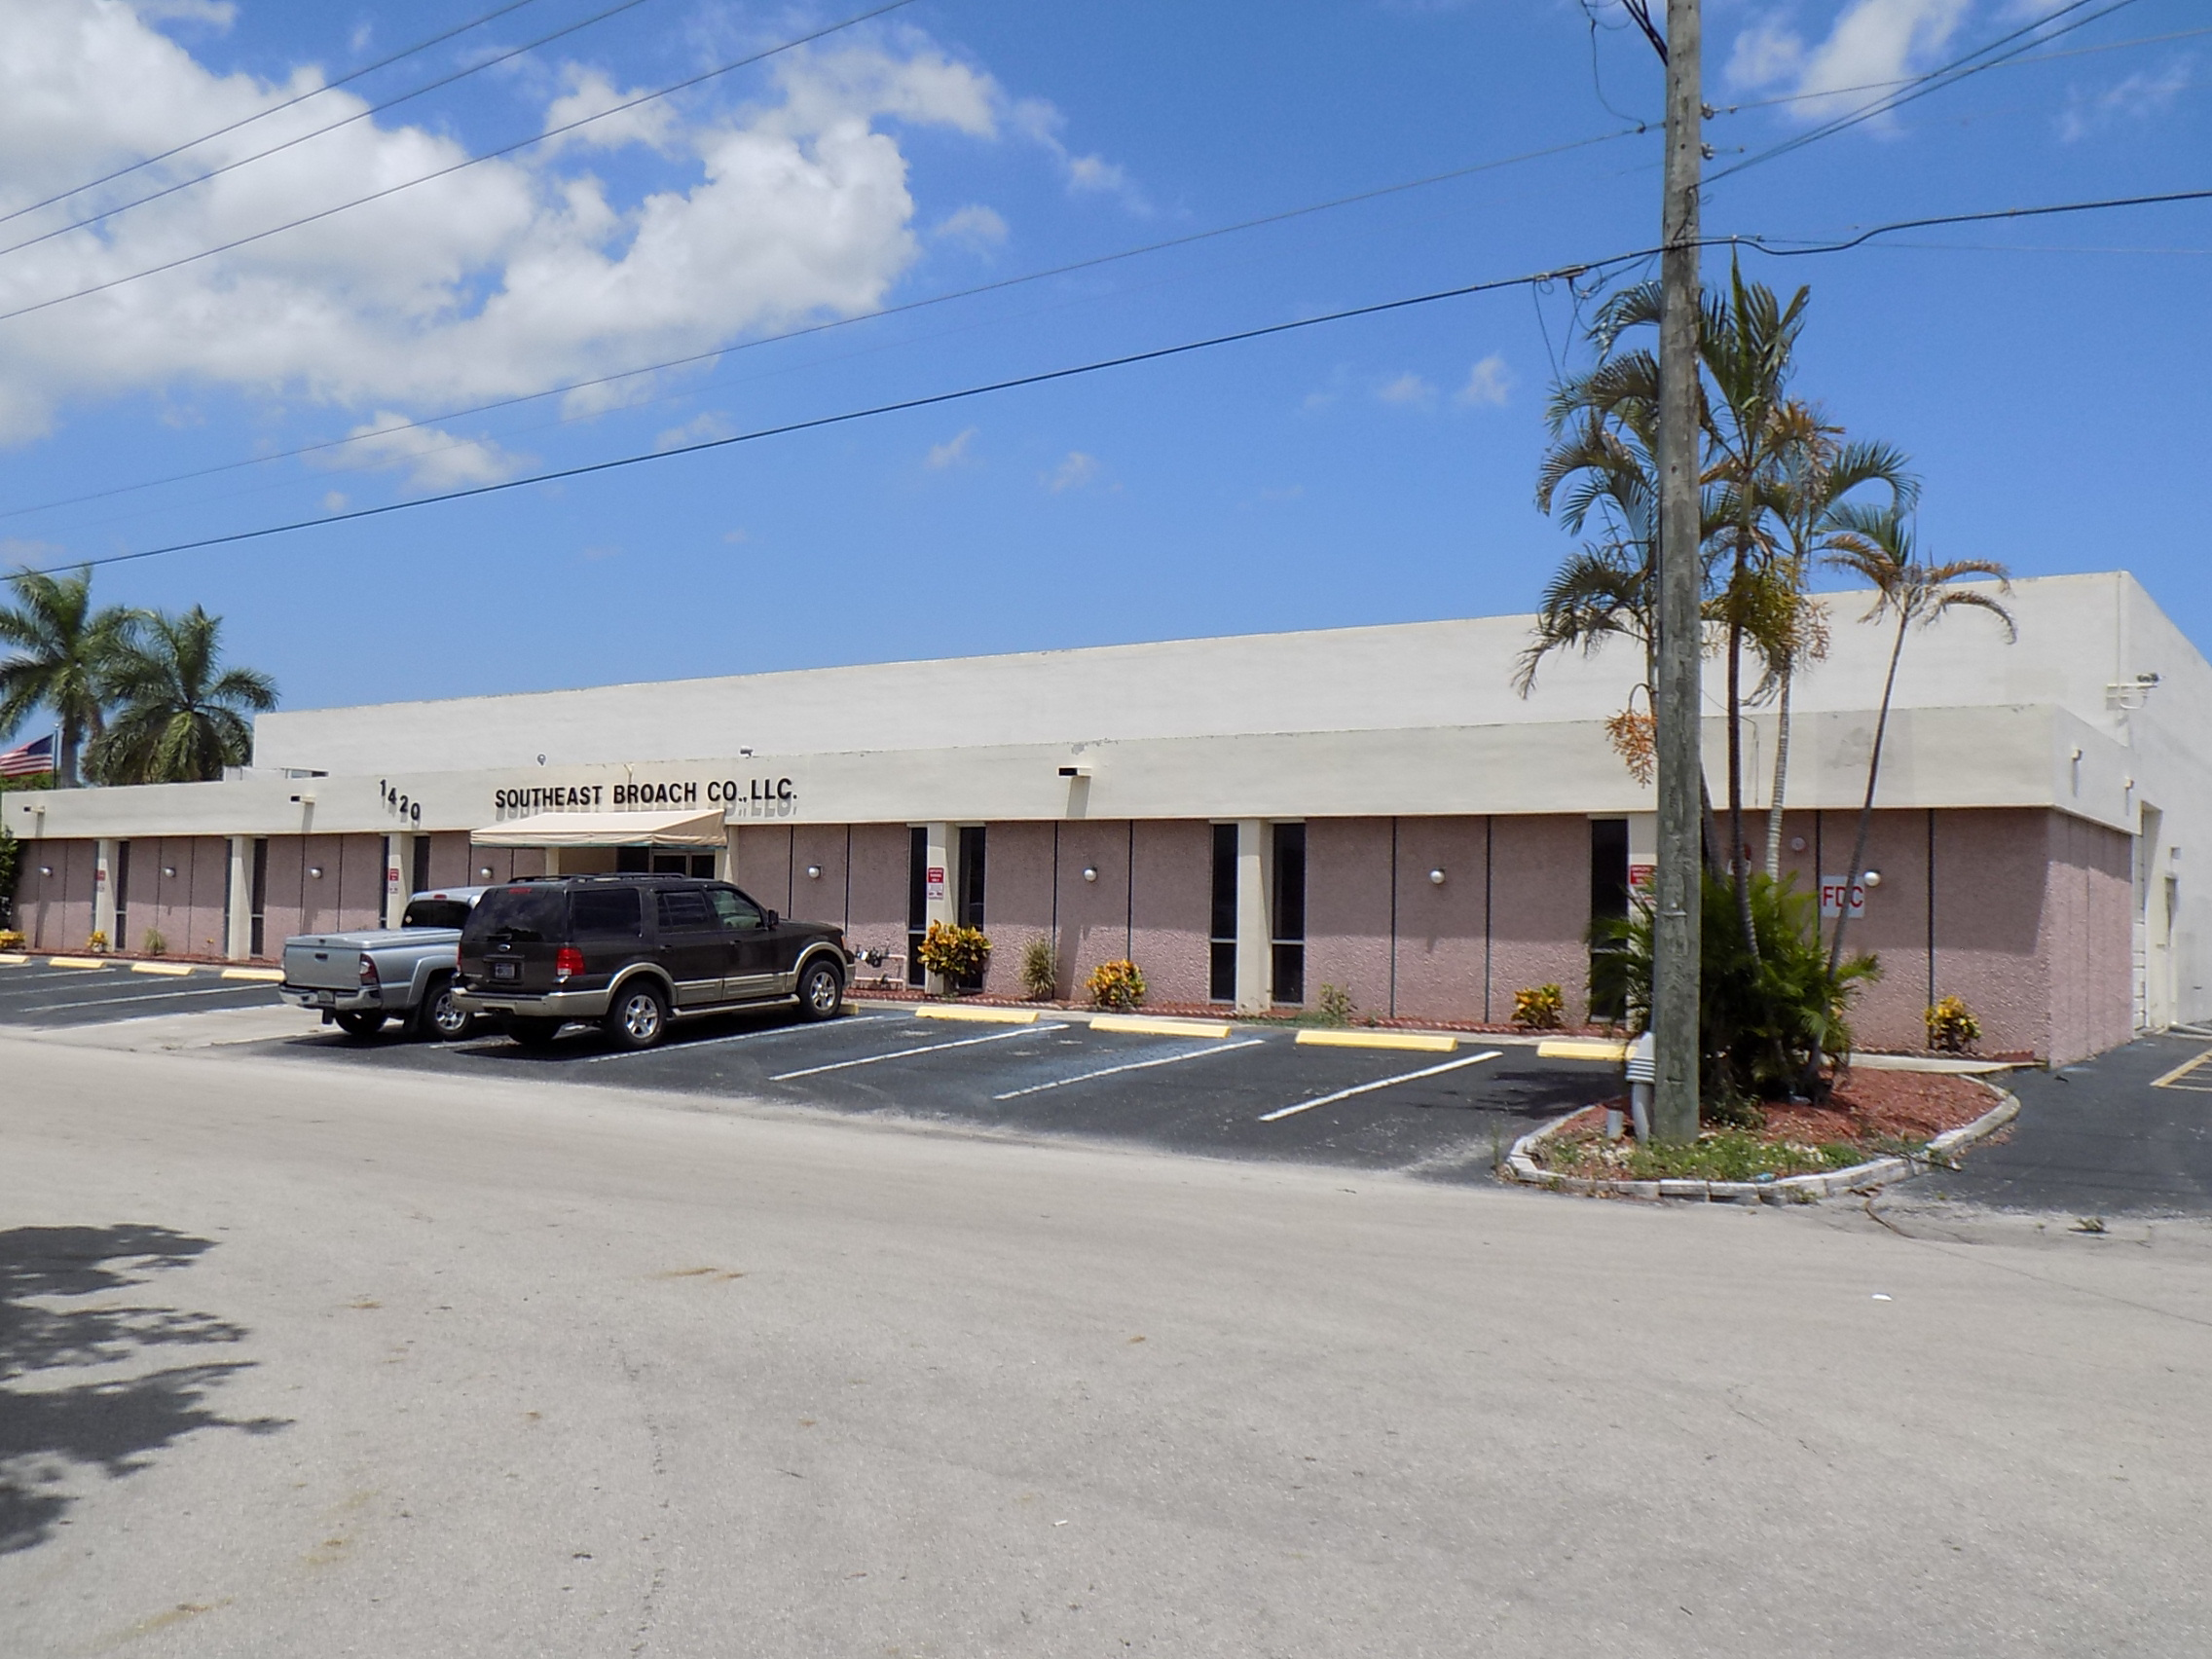 Sperry Van Ness Commercial Realty Agent Represents Both Sides in Fort Lauderdale Transaction